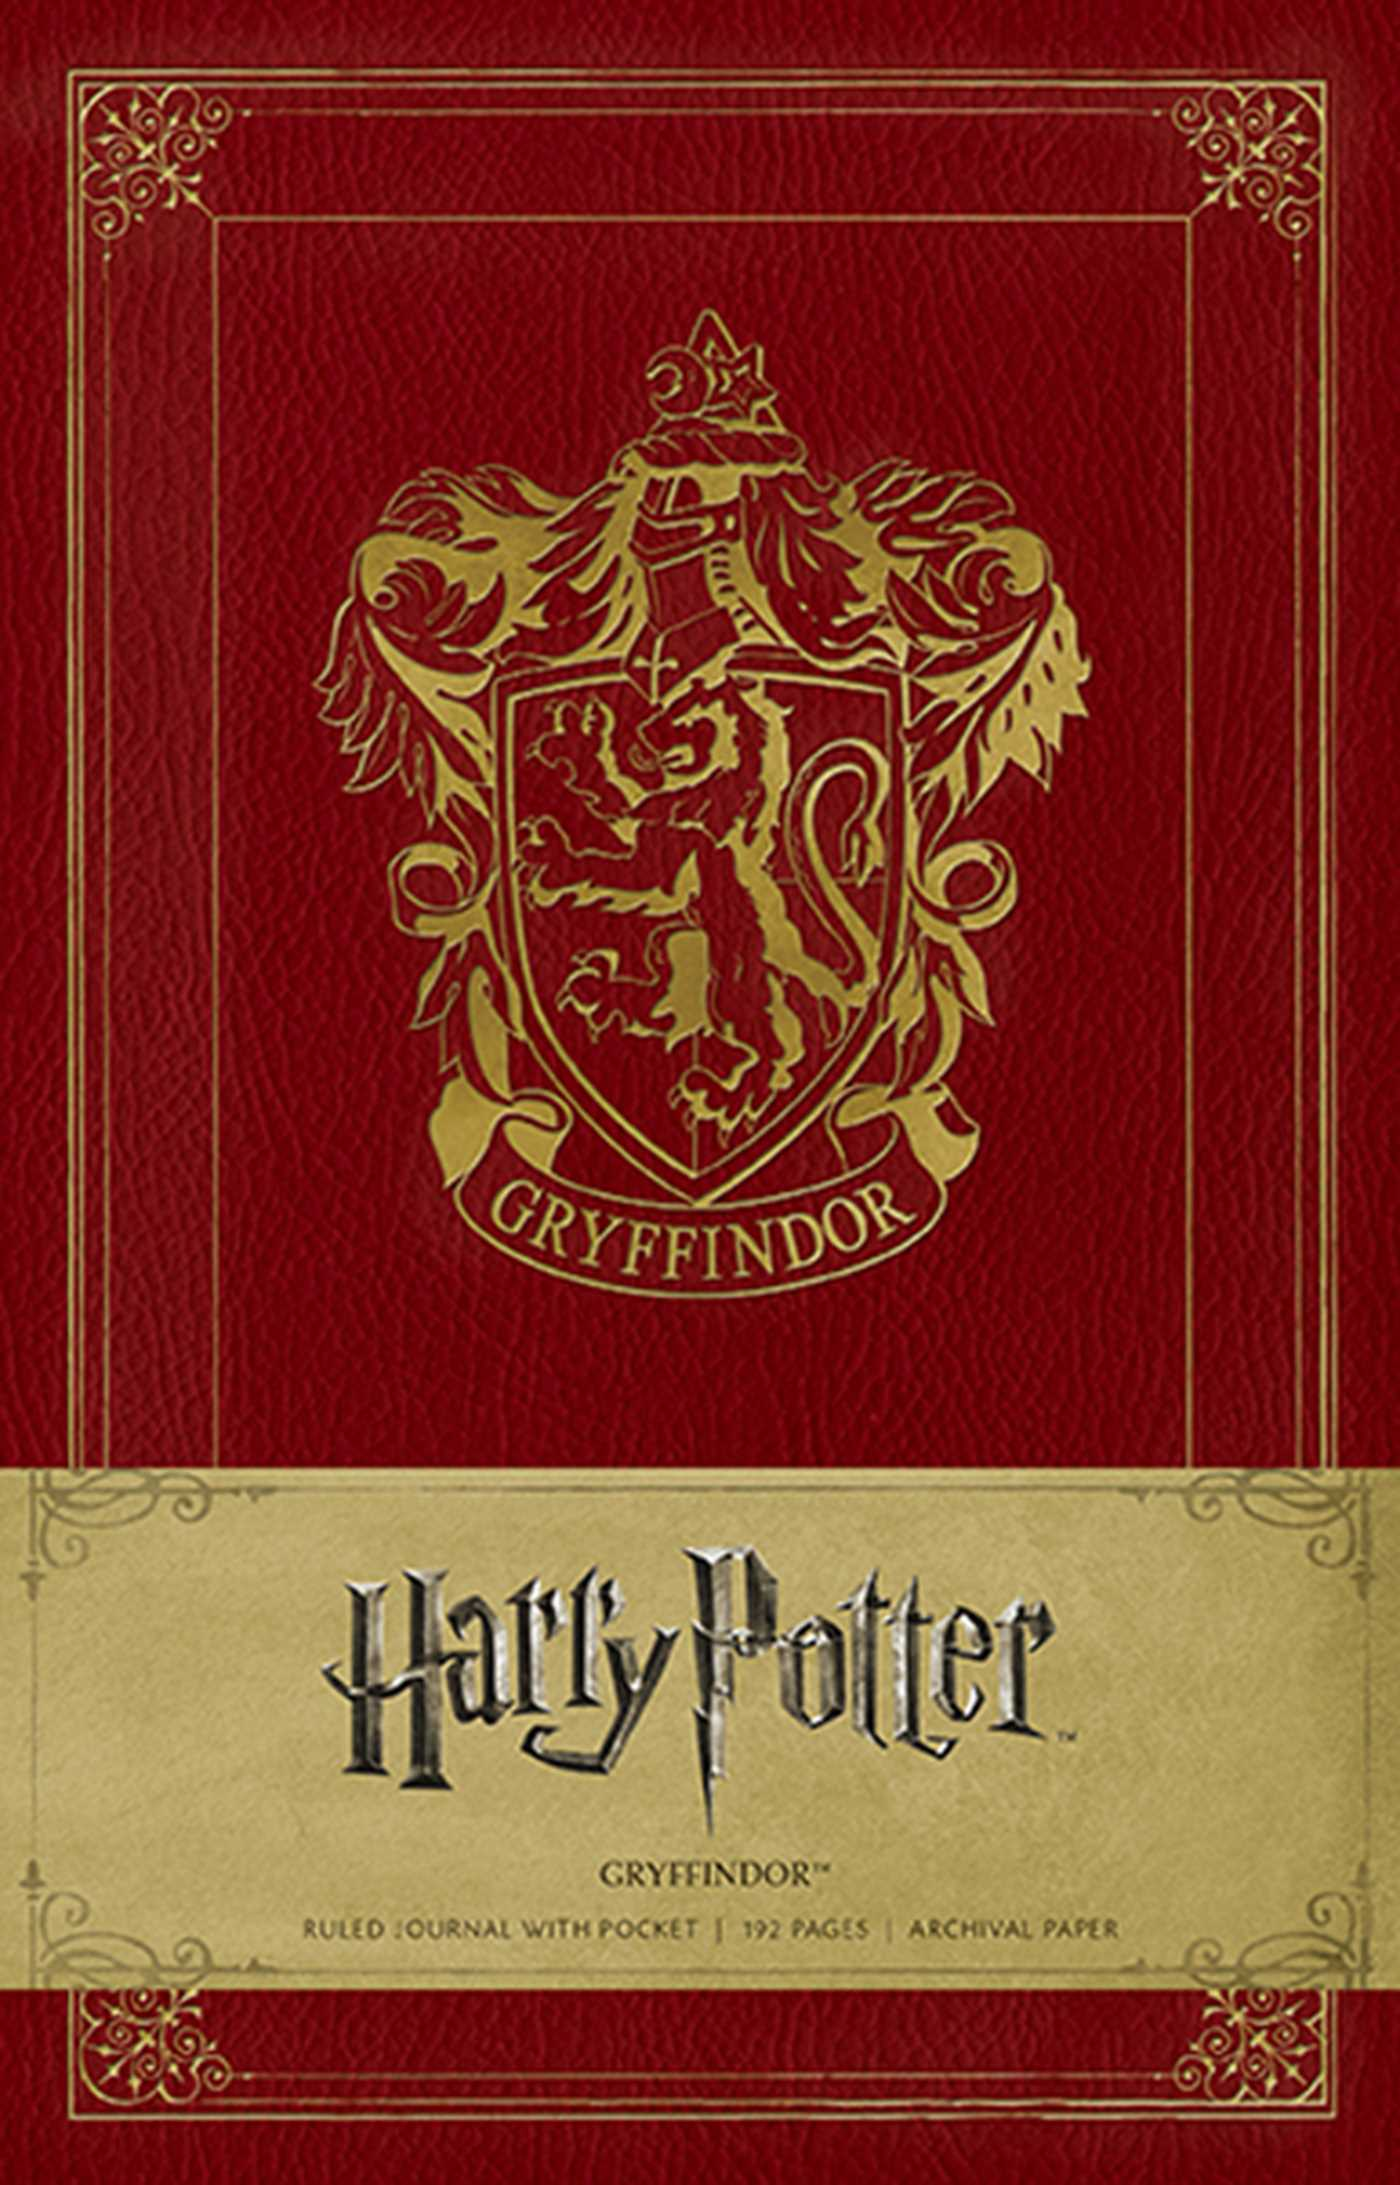 Harry Potter Gryffindor Hardcover Ruled Journal Book By